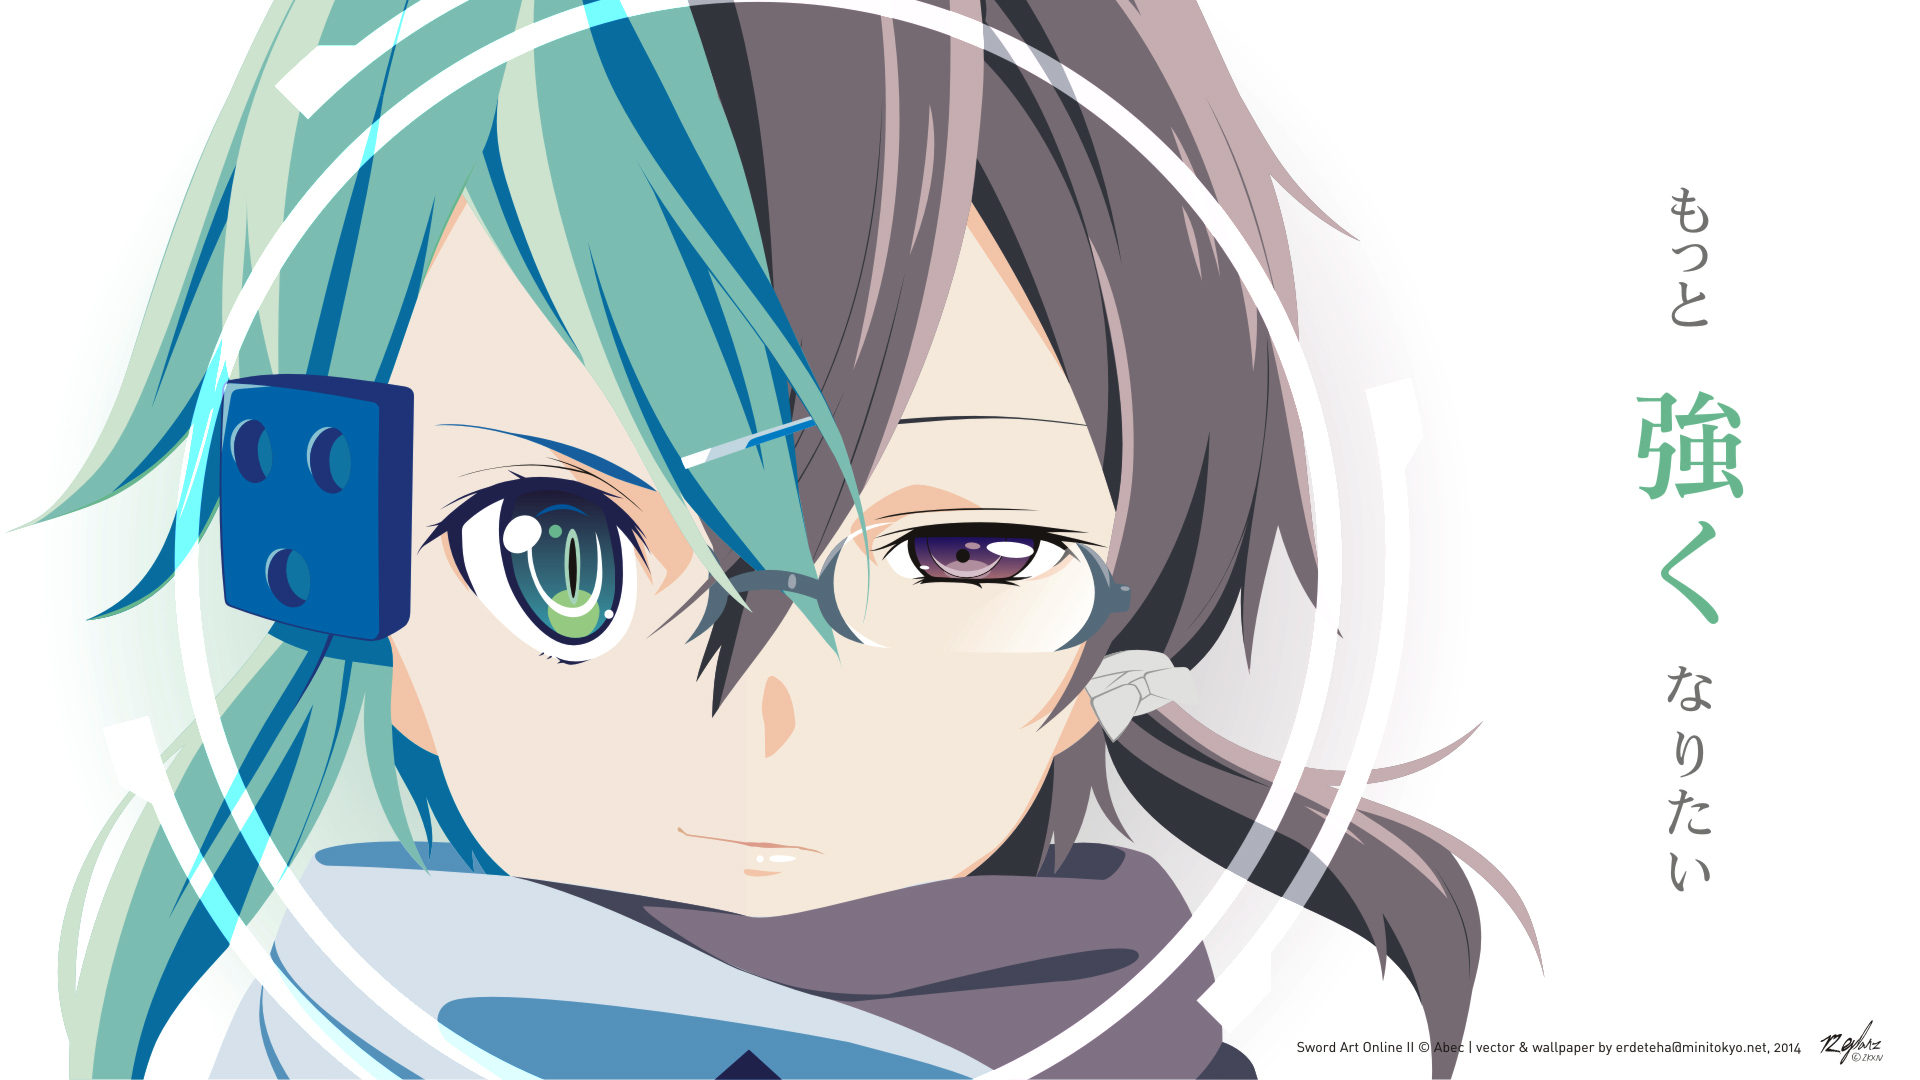 Sword Art Online 2 HD Images Wallpapers 664   HD Wallpapers Site 1920x1080